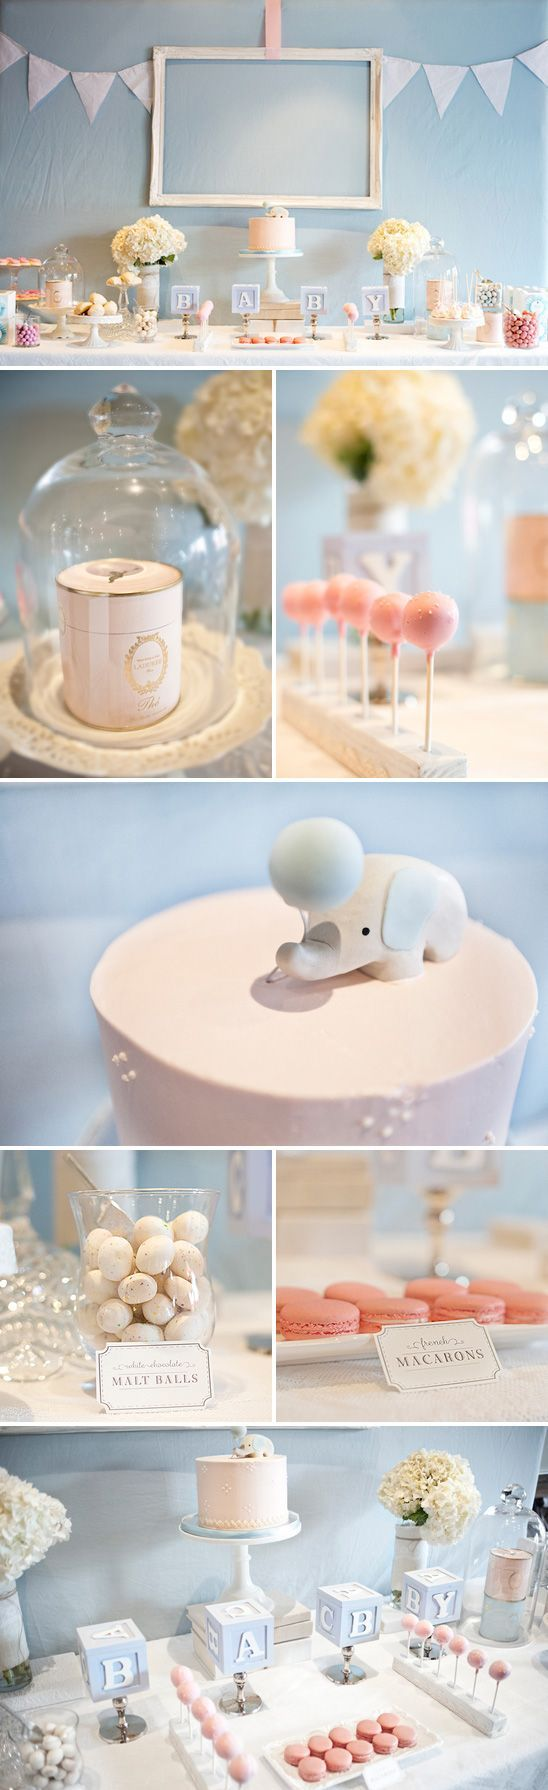 Elegant pink and blue baby shower--love the baby blocks inspired by my shower!